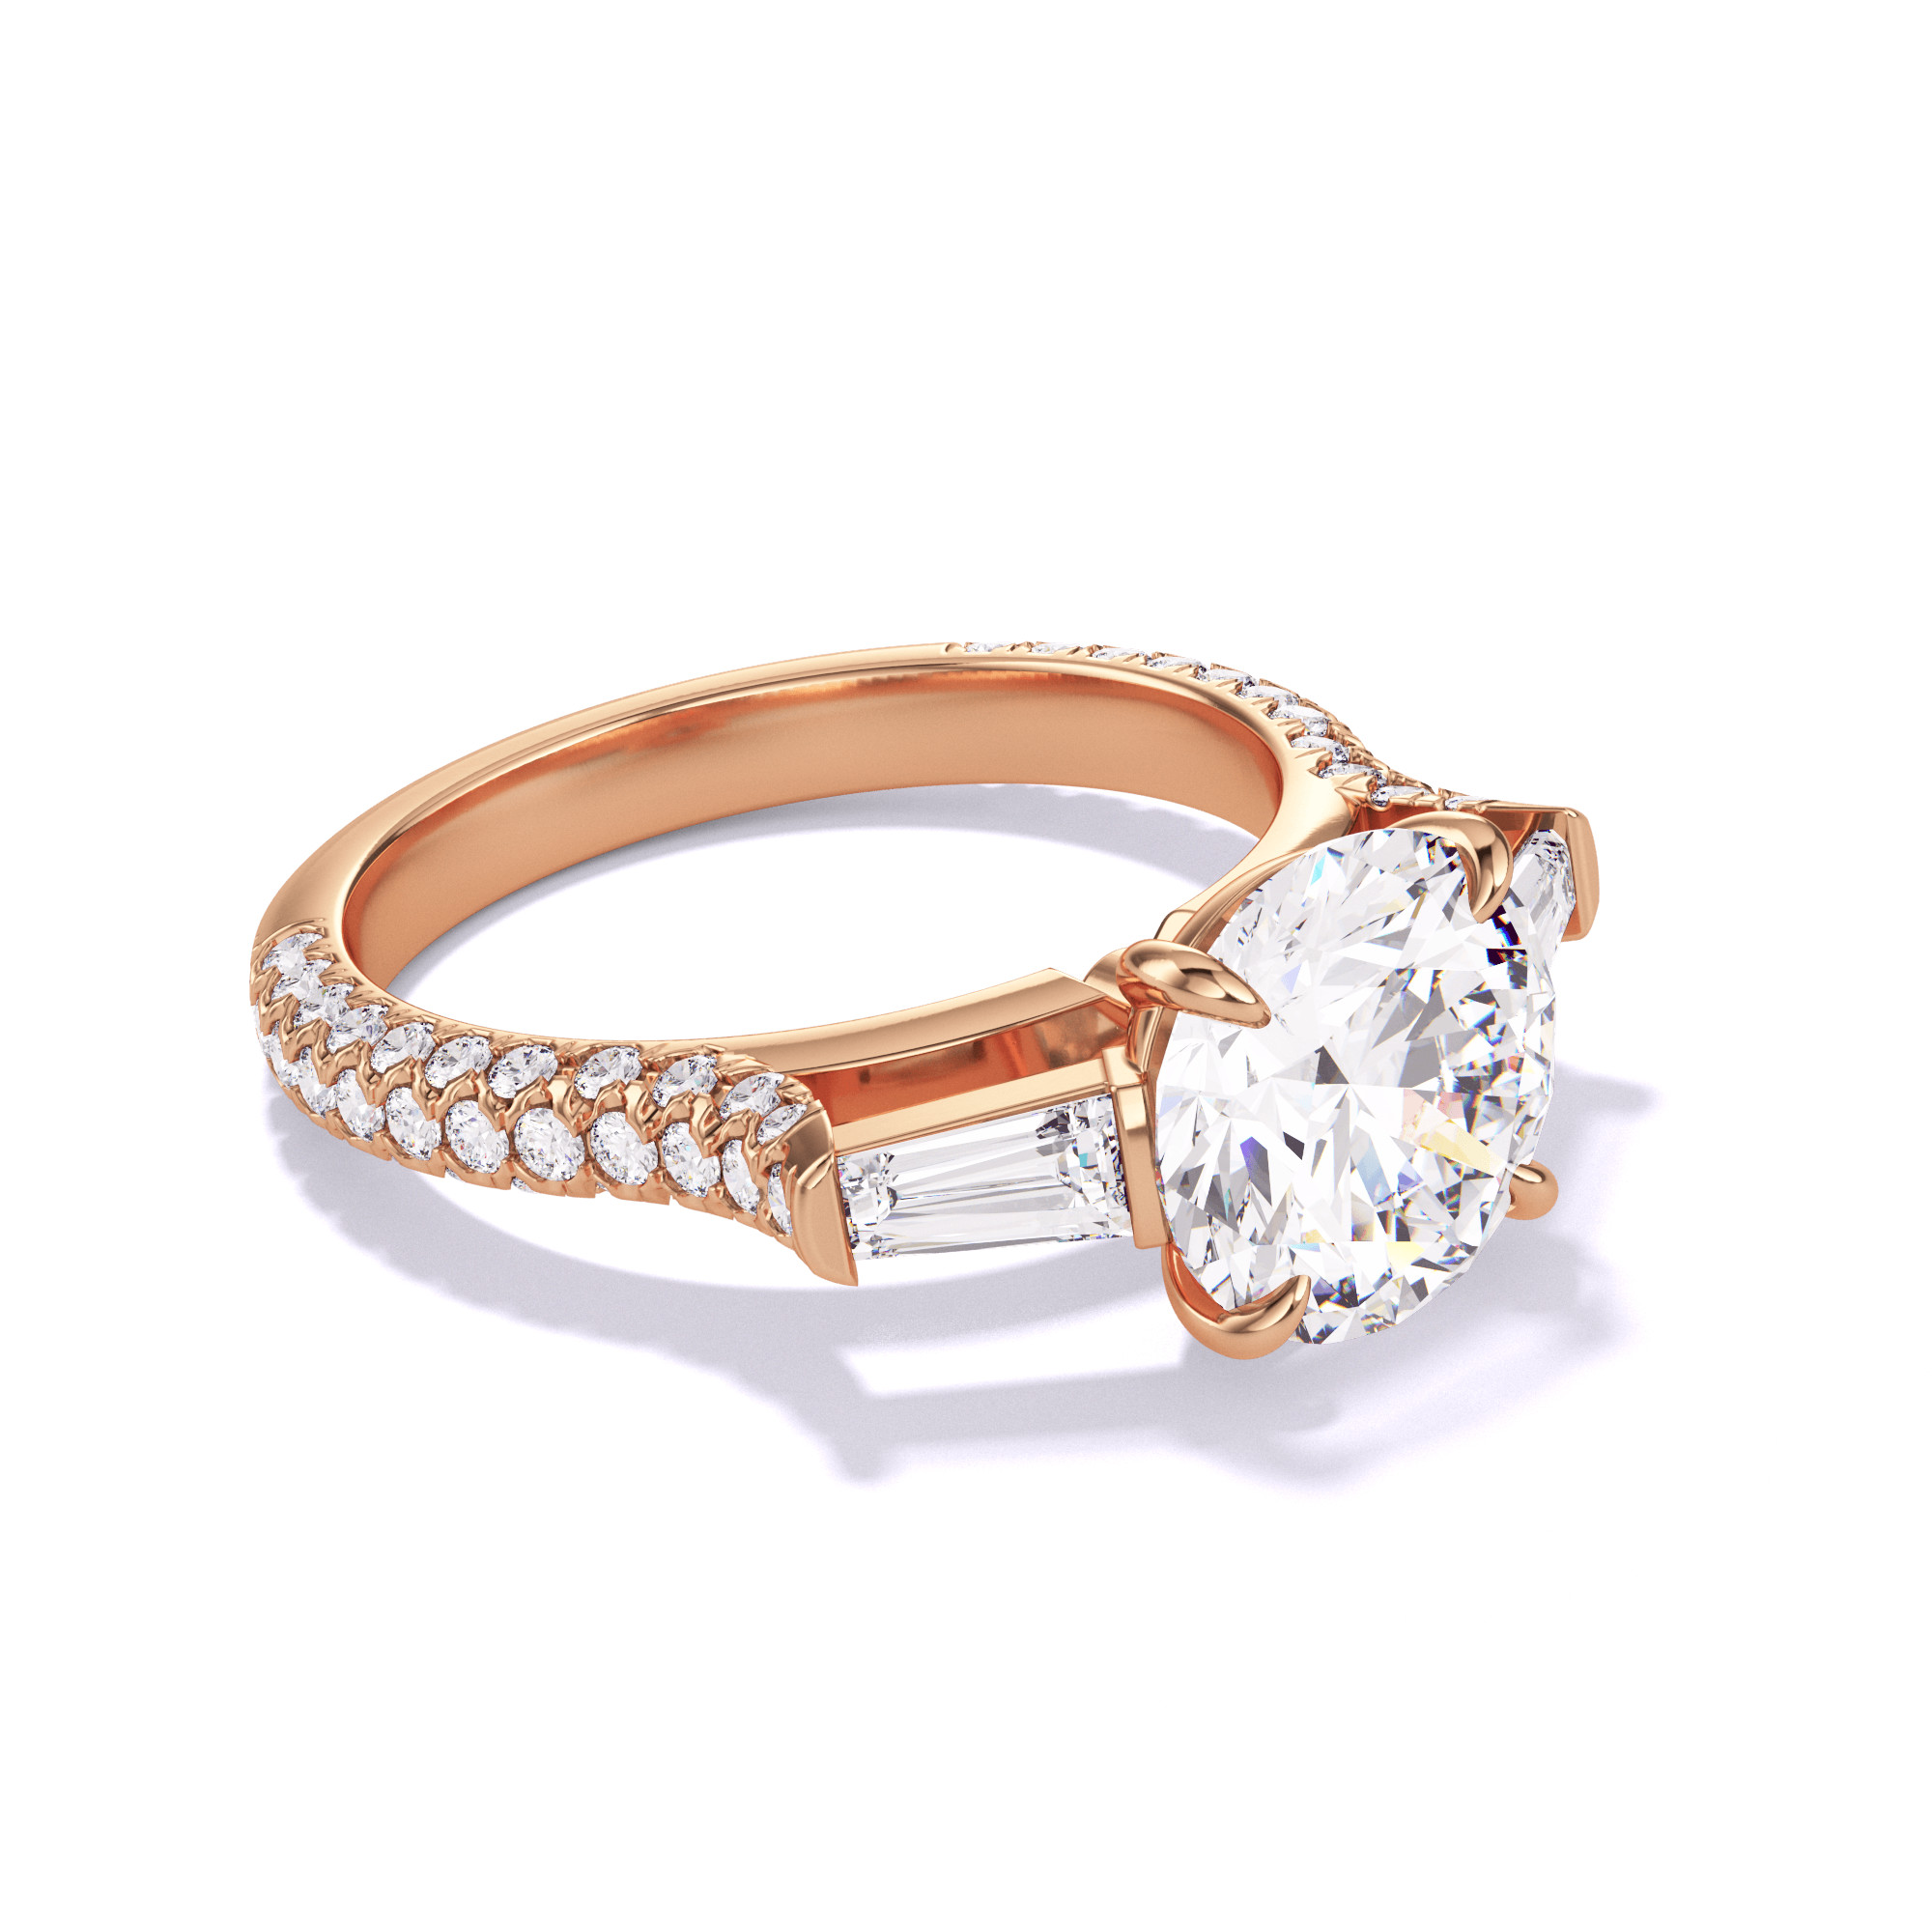 ROUND CUT, BAGUETTE FLANK SETTING, THREE PHASES TRIPLE PAVE, 18K ROSE GOLD